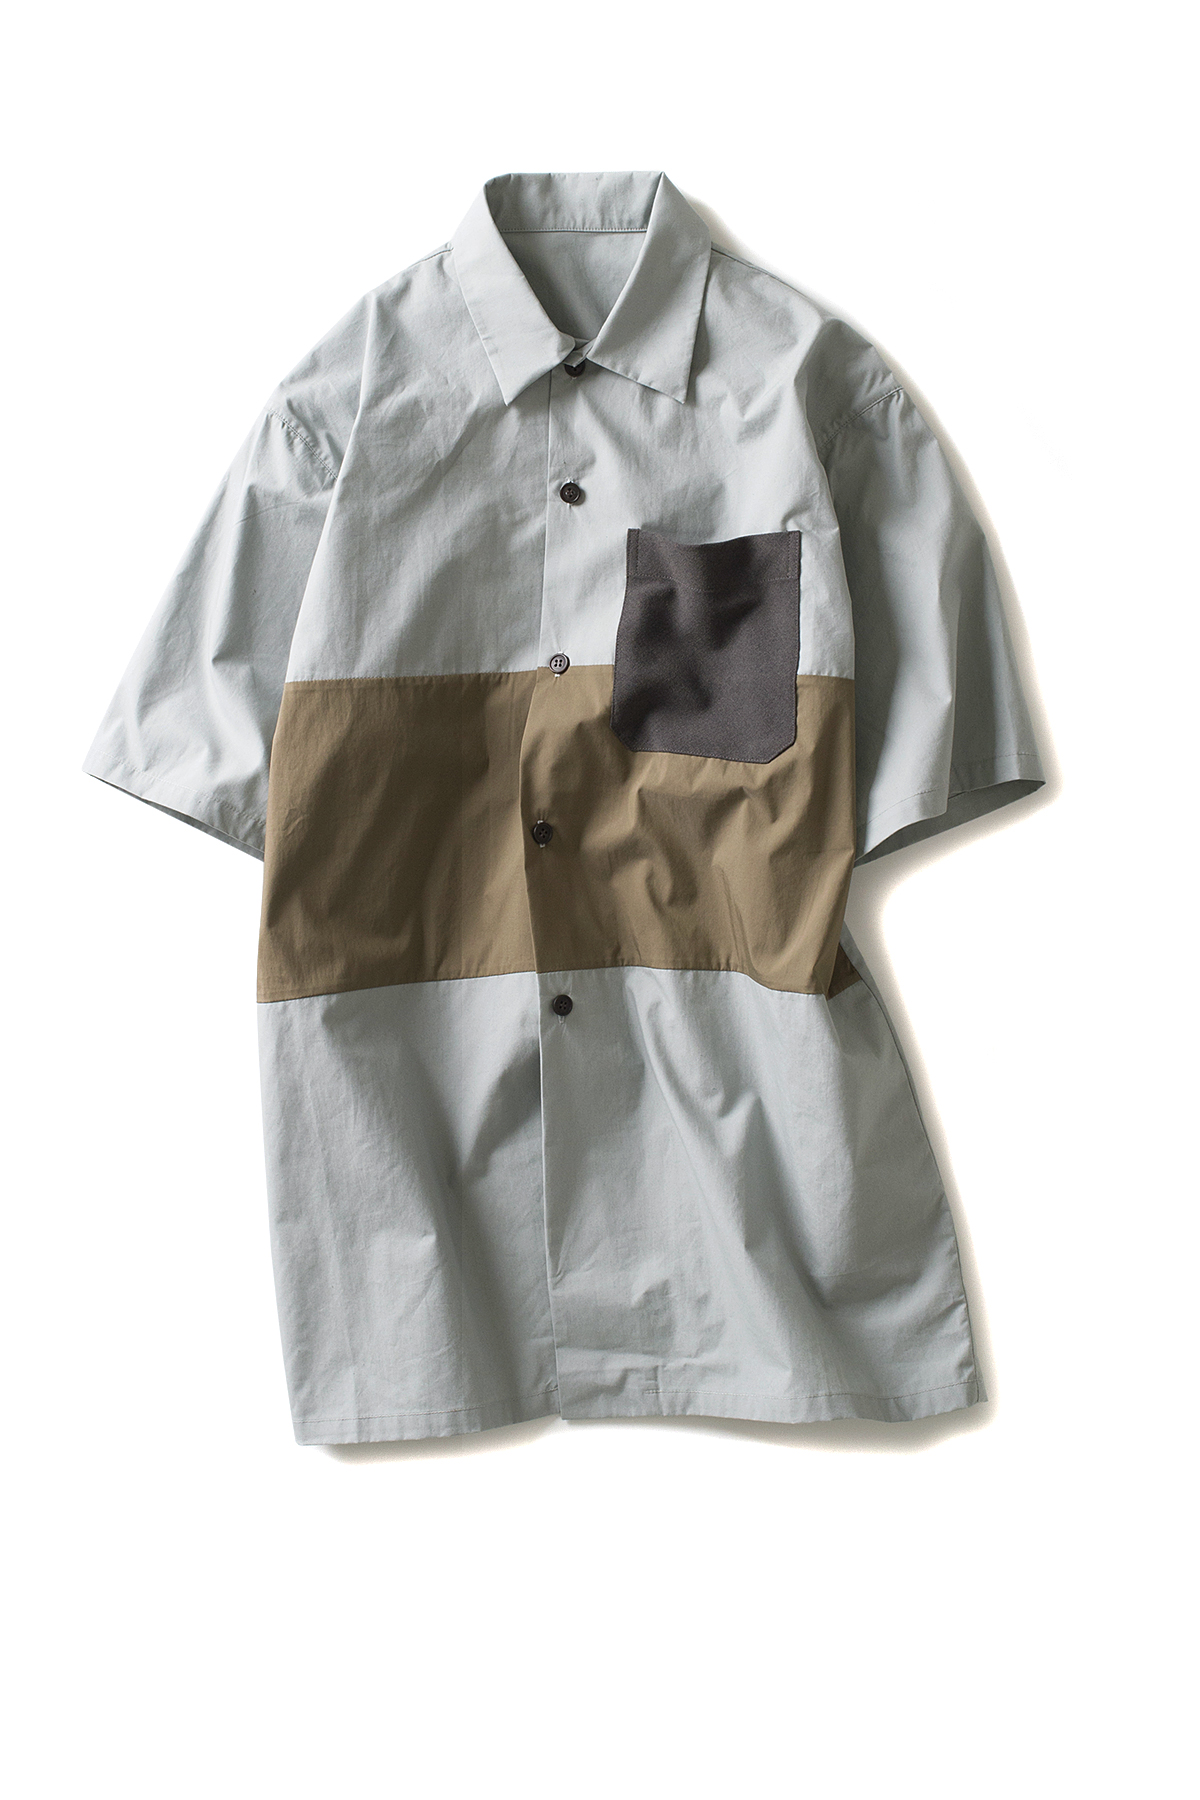 Peir Wu : Tourist Shirt (Mint / Khaki / Grey)